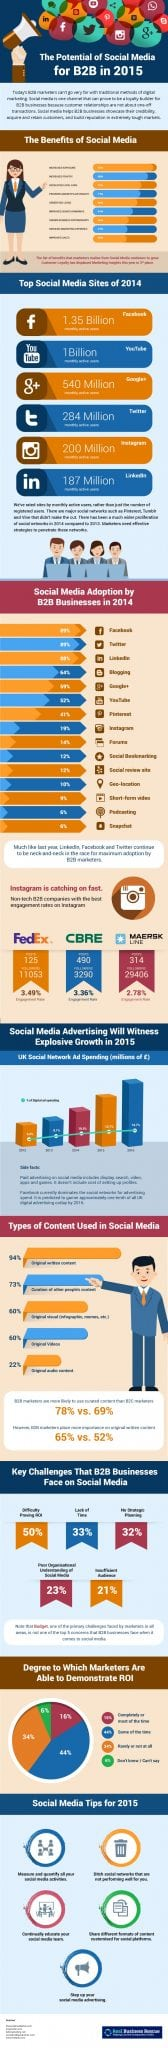 Photo of How B2B Businesses Are Tackling Social Media In 2015 [INFOGRAPHIC]